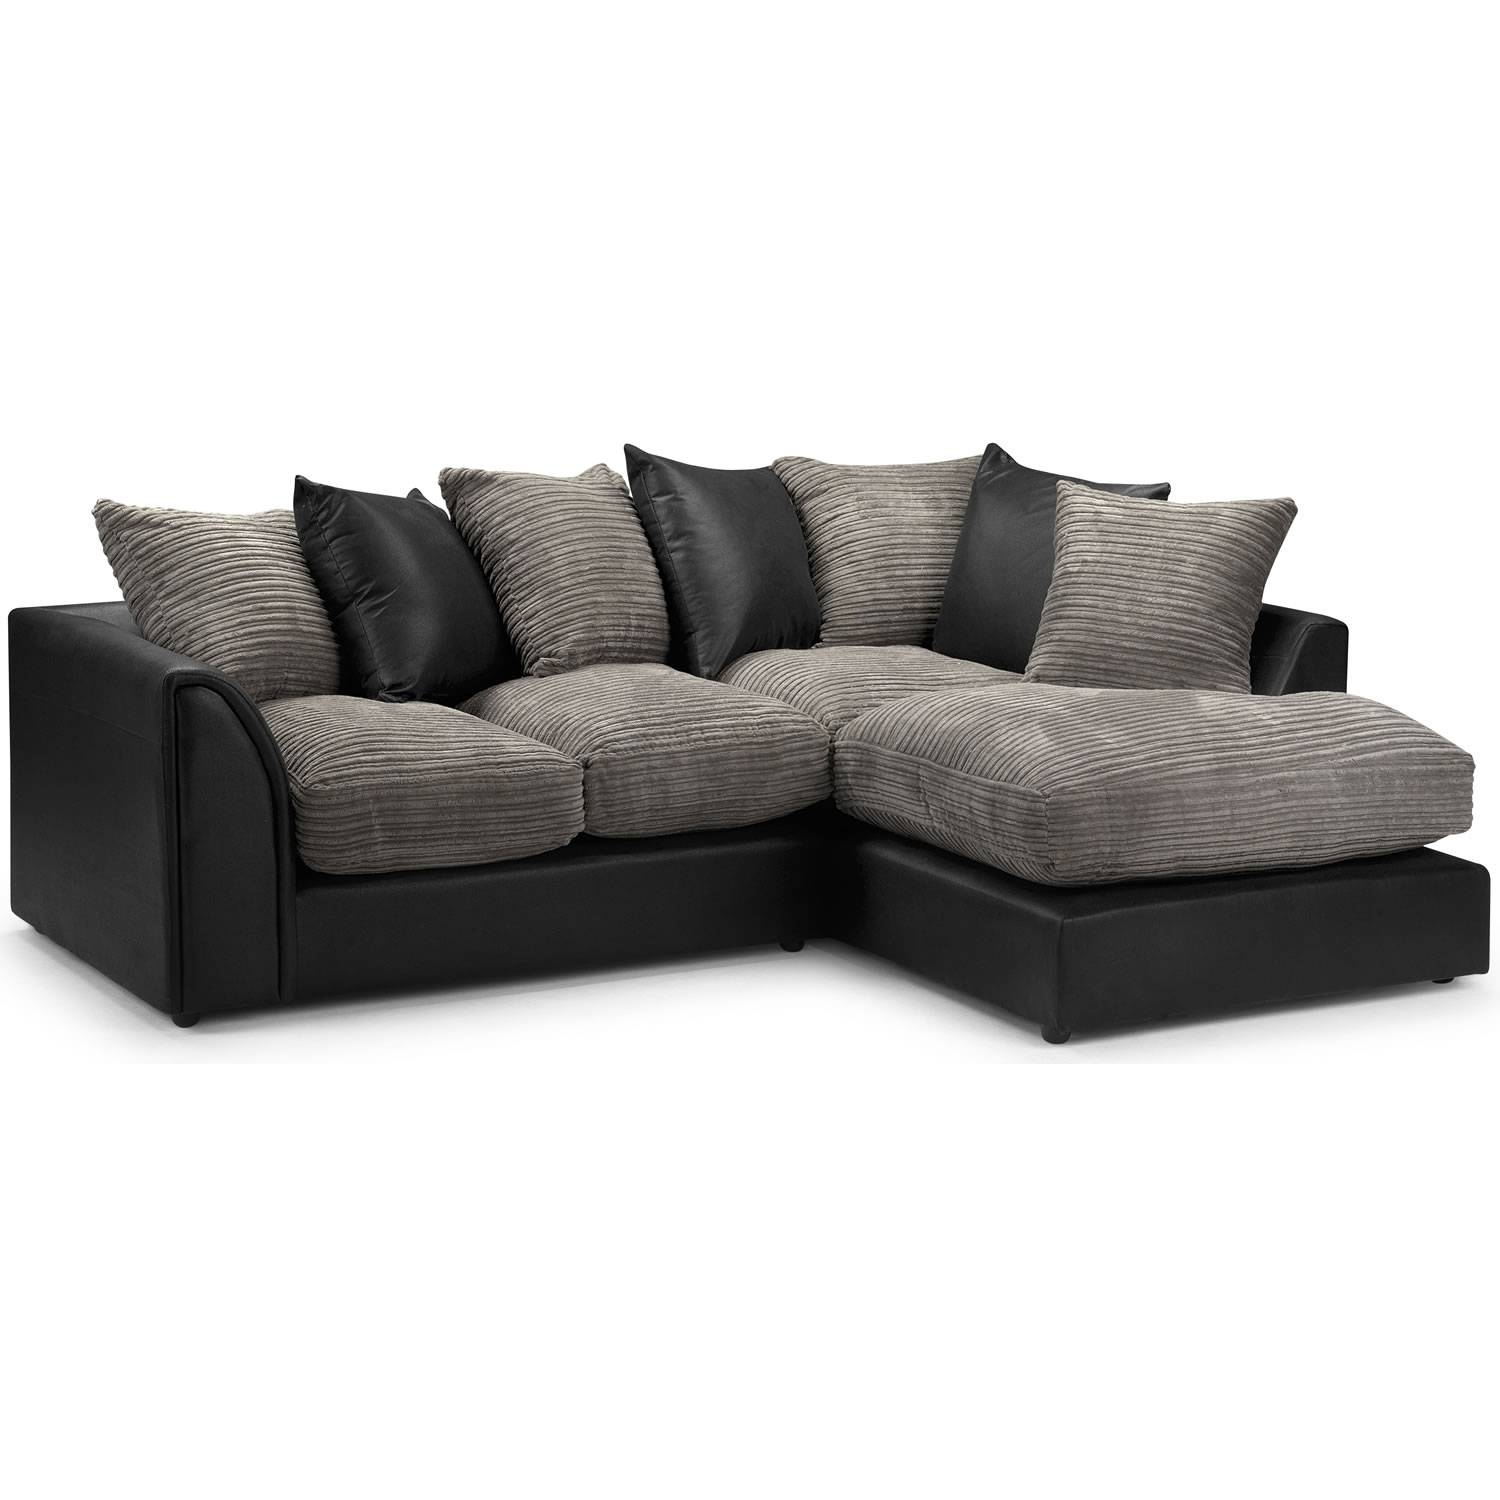 Courner Sofas intended for Leather Corner Sofas (Image 11 of 30)